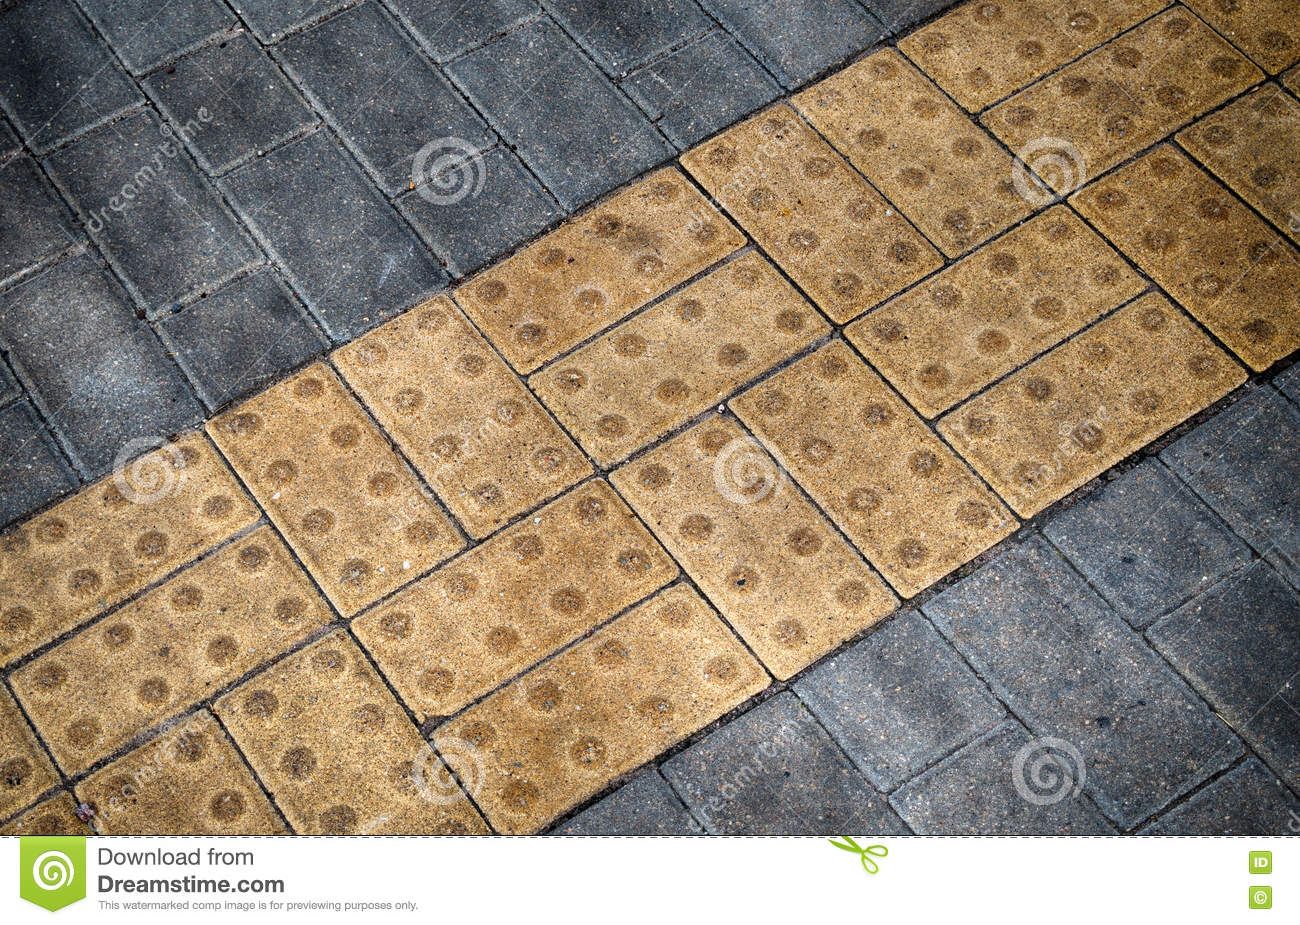 Tactile Paving For Blind And Visually Impaired Royalty ...